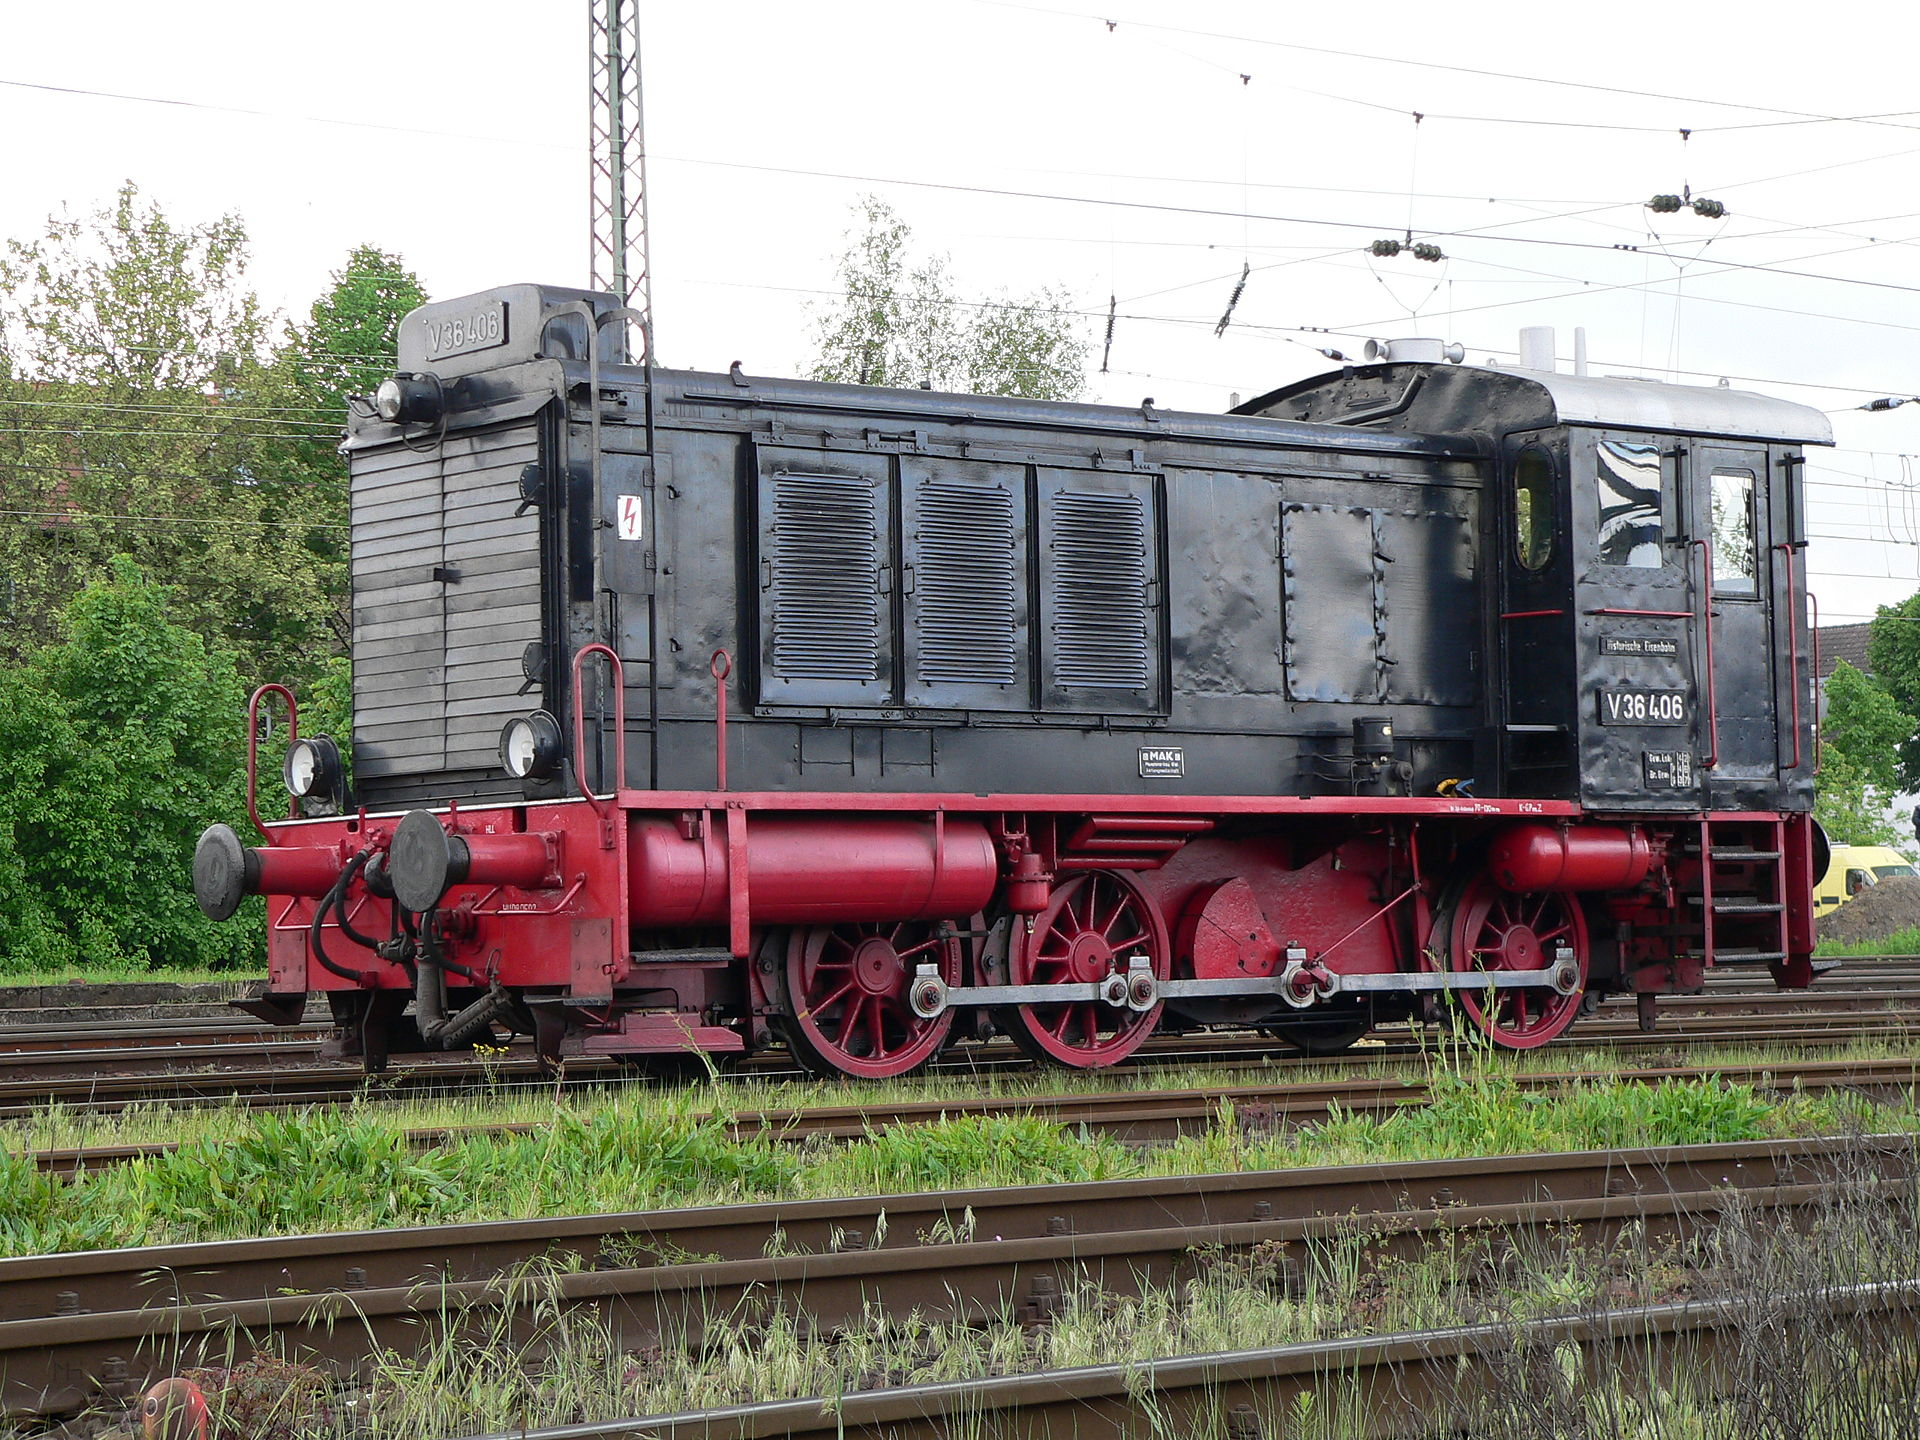 German_locomotive_class_V36.JPG